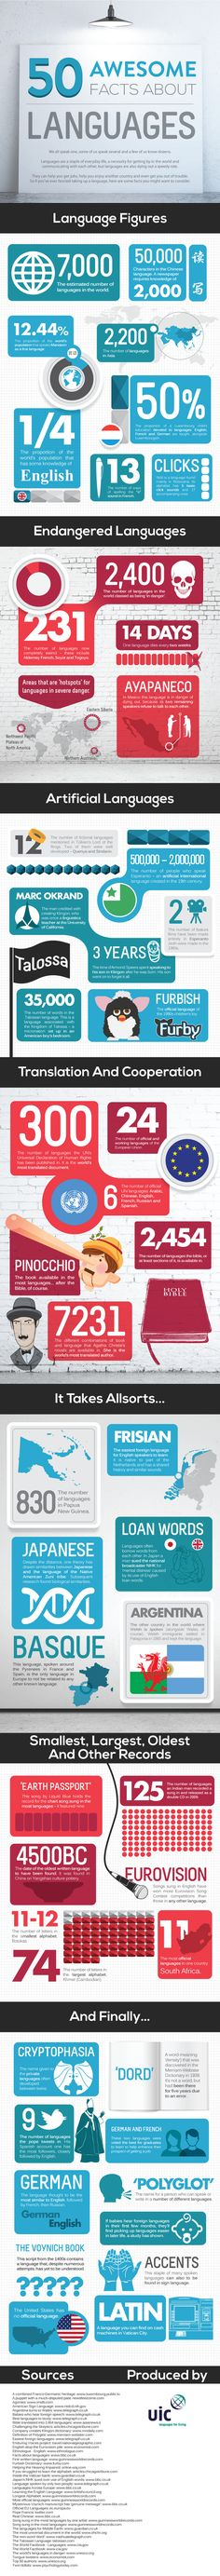 50 awesome facts about languages #infographic